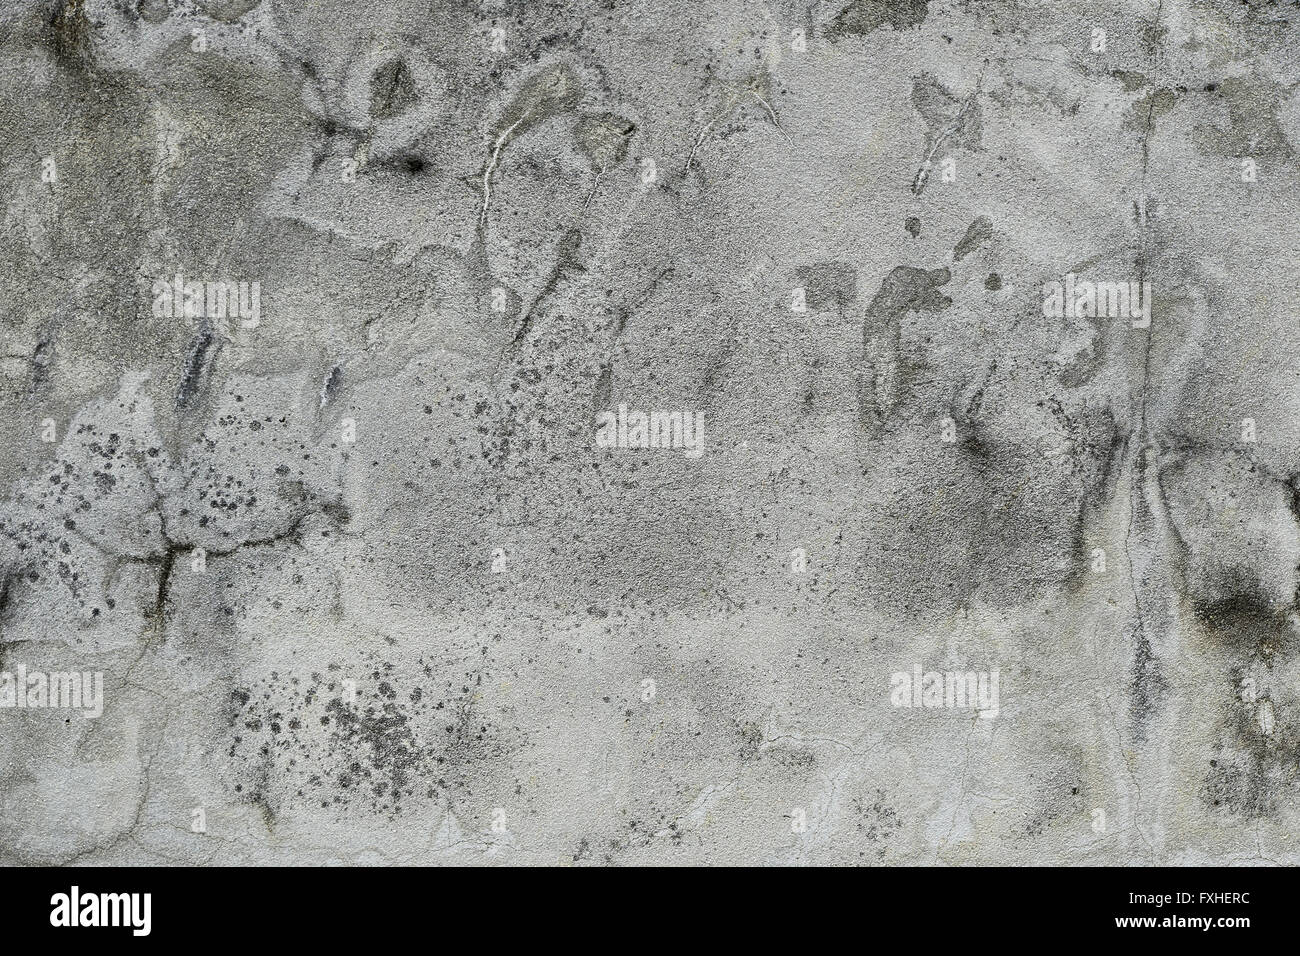 Grunge dirty concrete wall or floor panel texture with for Black stains on concrete